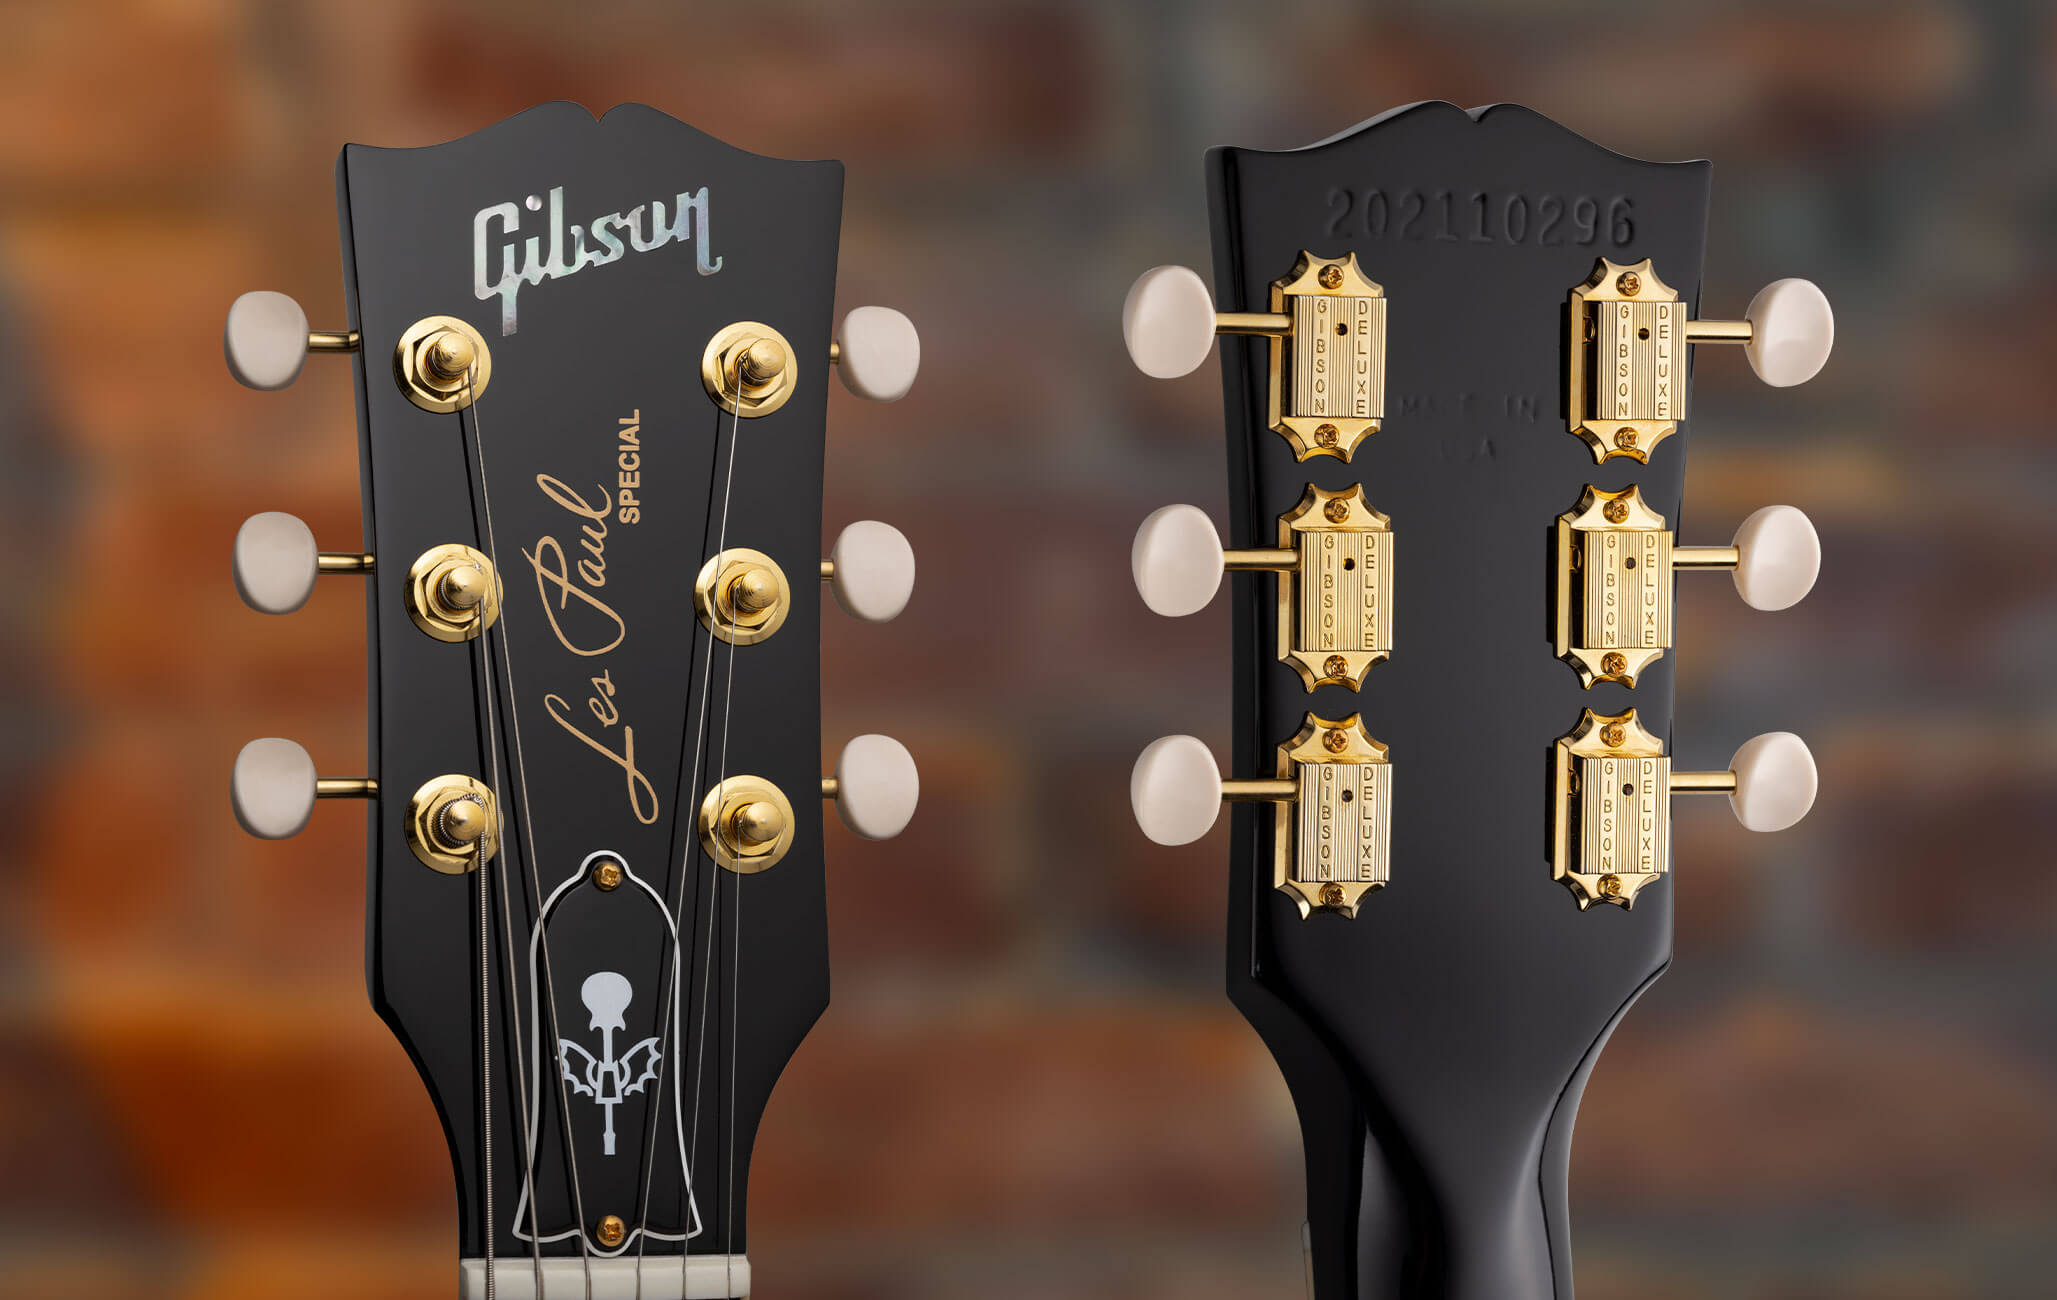 Gibson Signature Guitar Features Gold Hardware and a Custom Truss Rod Cover